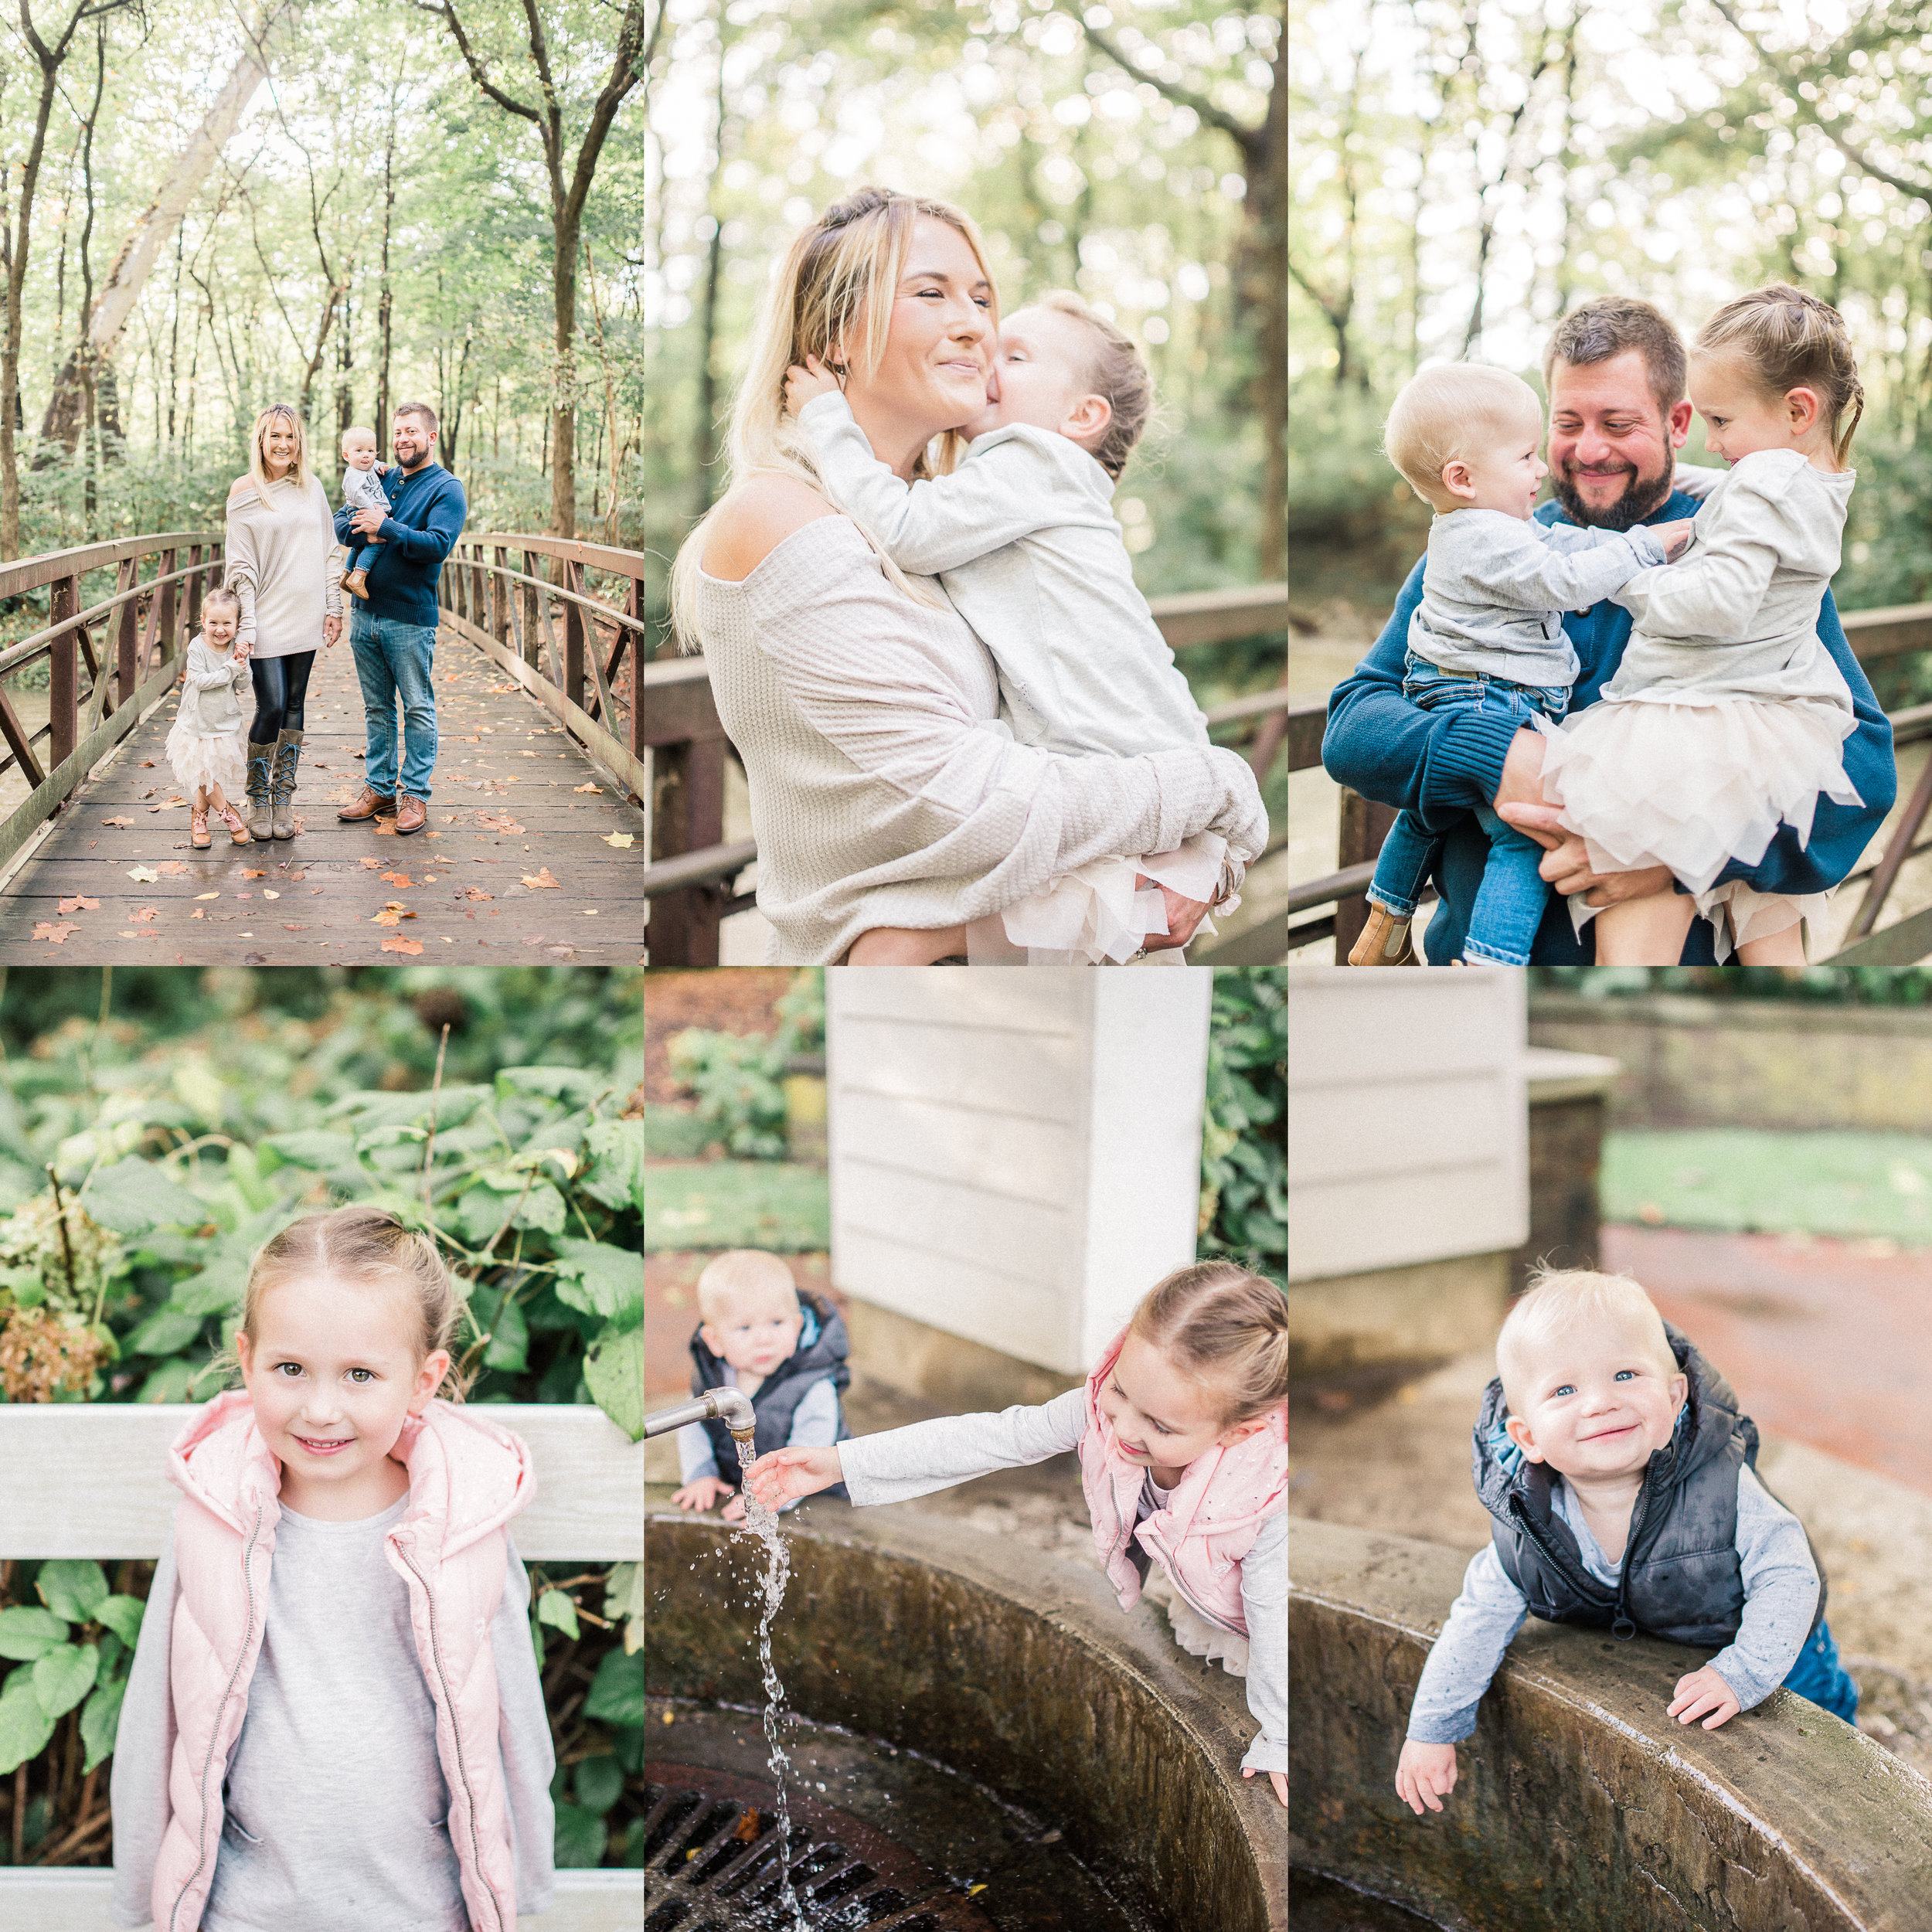 The Land Family | Woodsy Fall Photography Session at a Flowing Well | Carmel Indiana Family Photographers